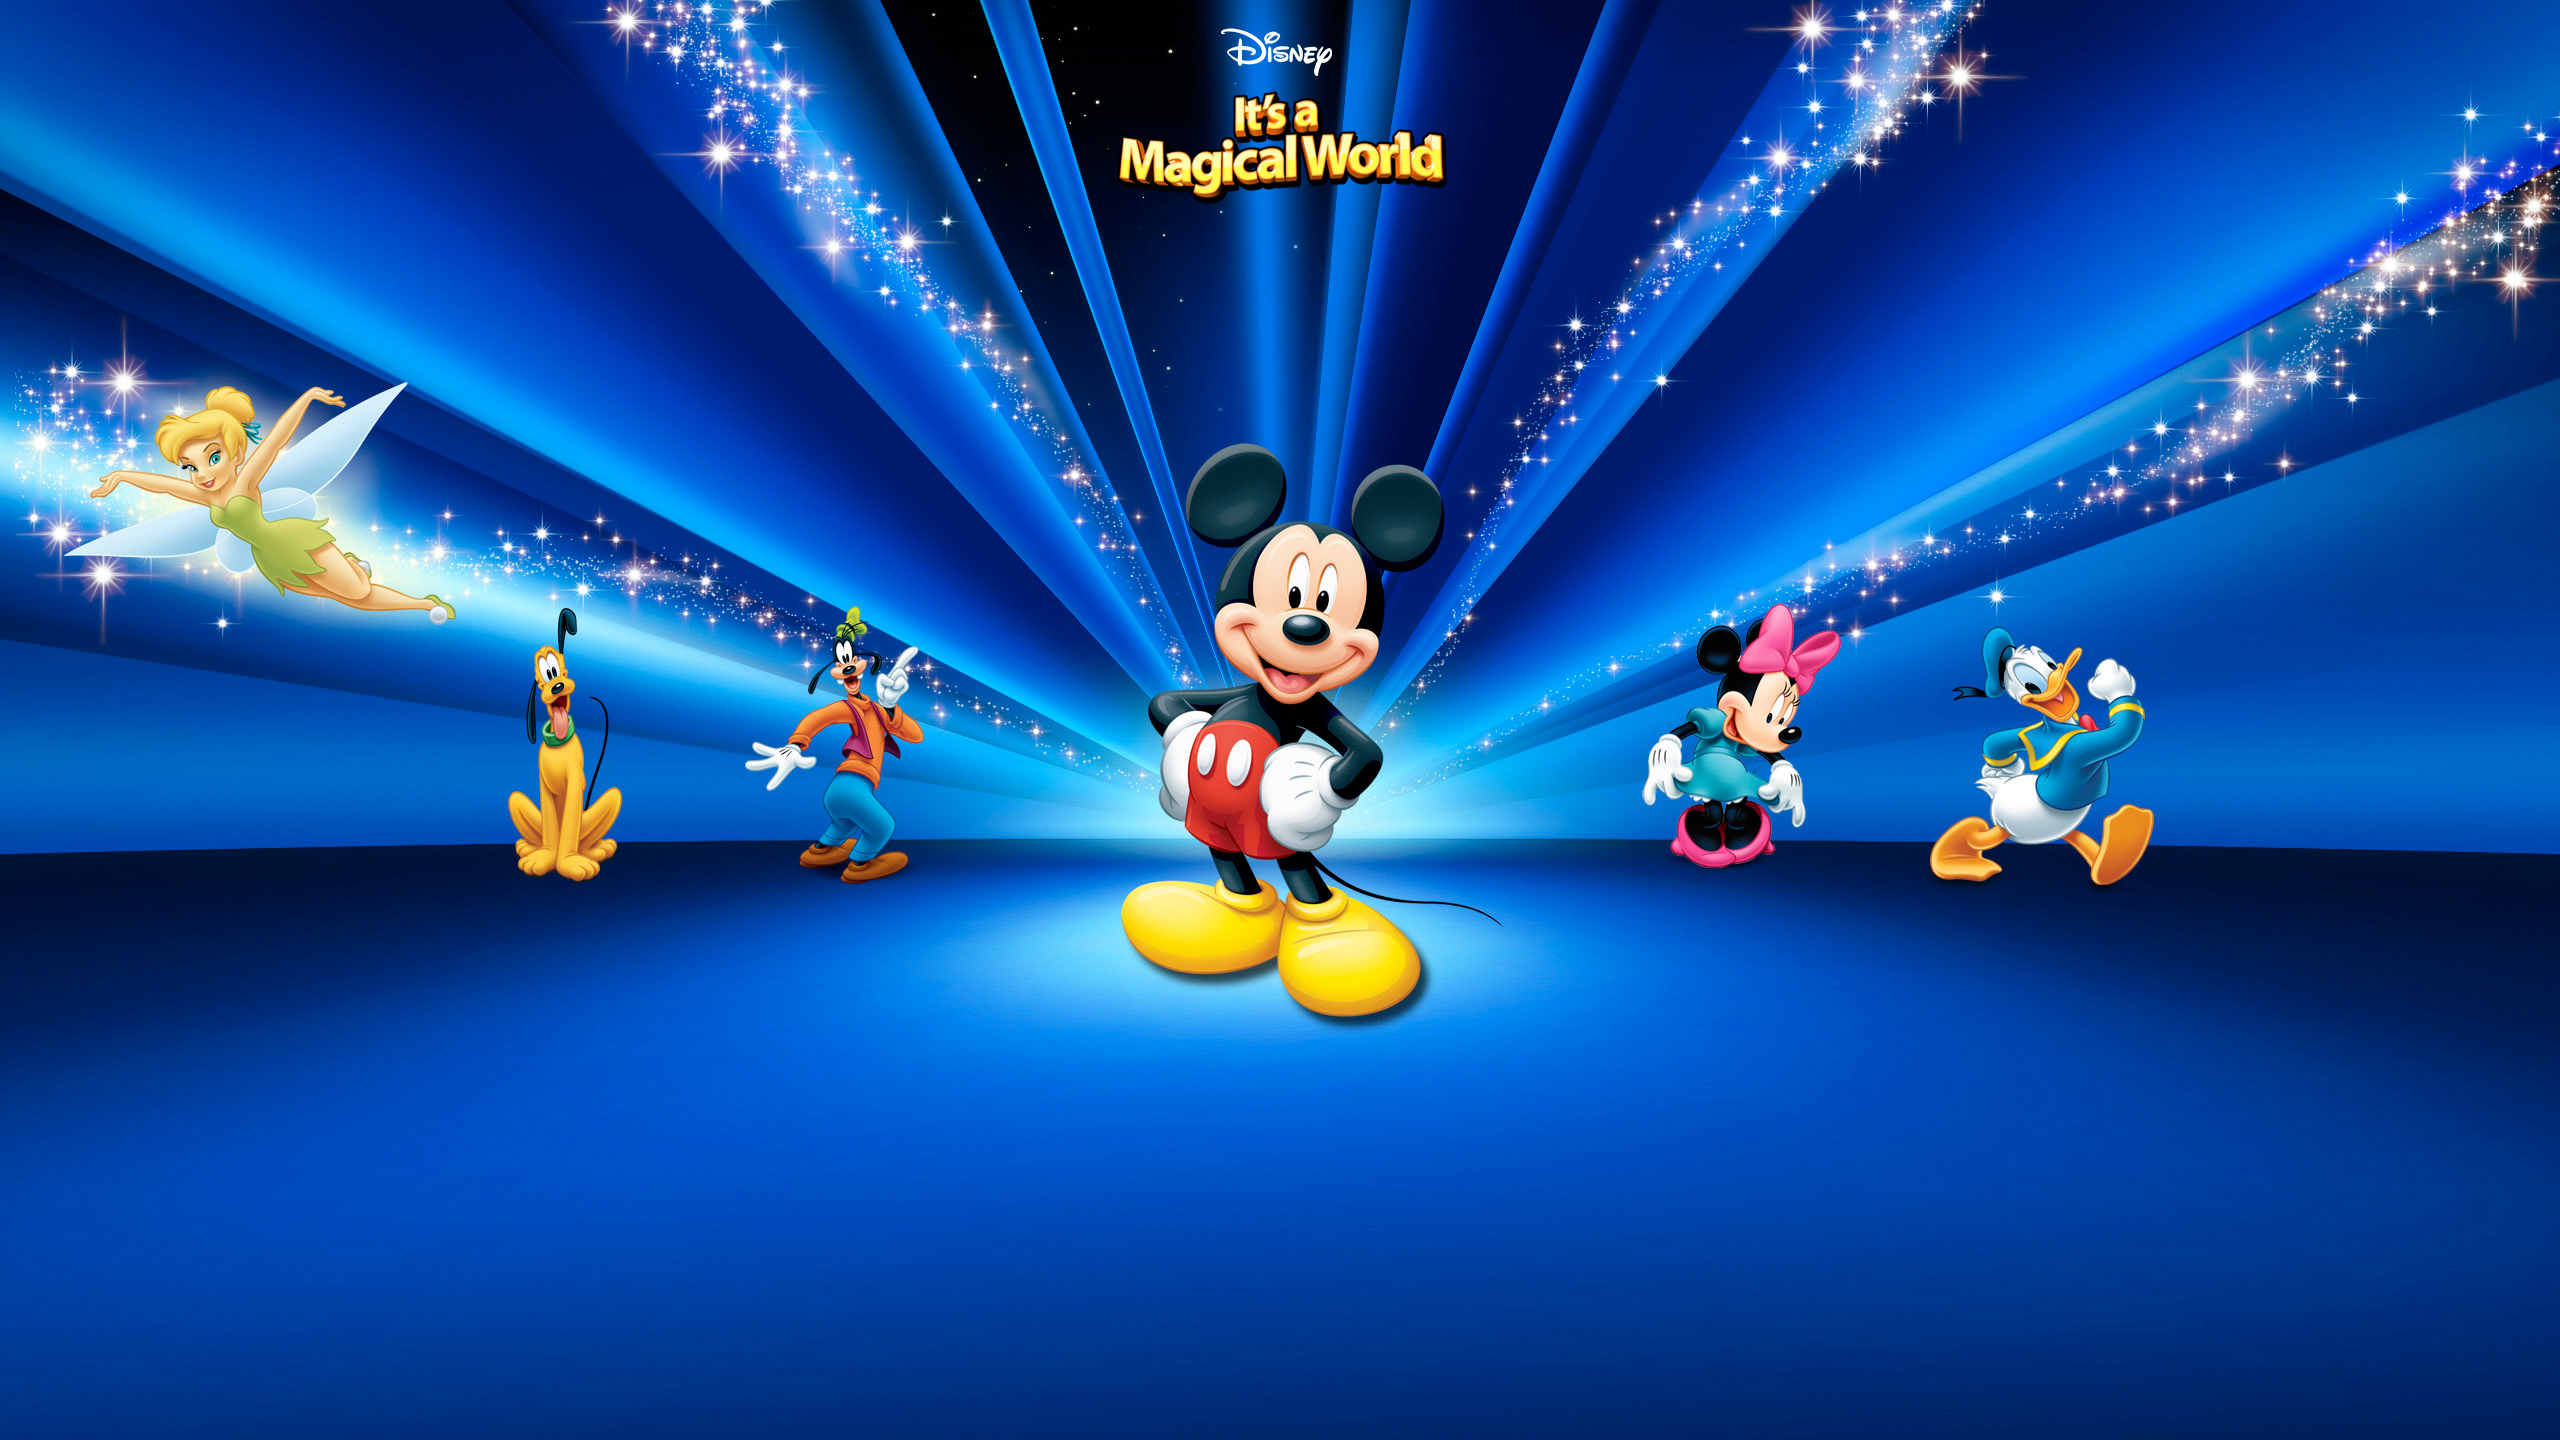 Disney Mickey Mouse World881286990 - Disney Mickey Mouse World - World, Mouse, Mickey, Disney, Dessert